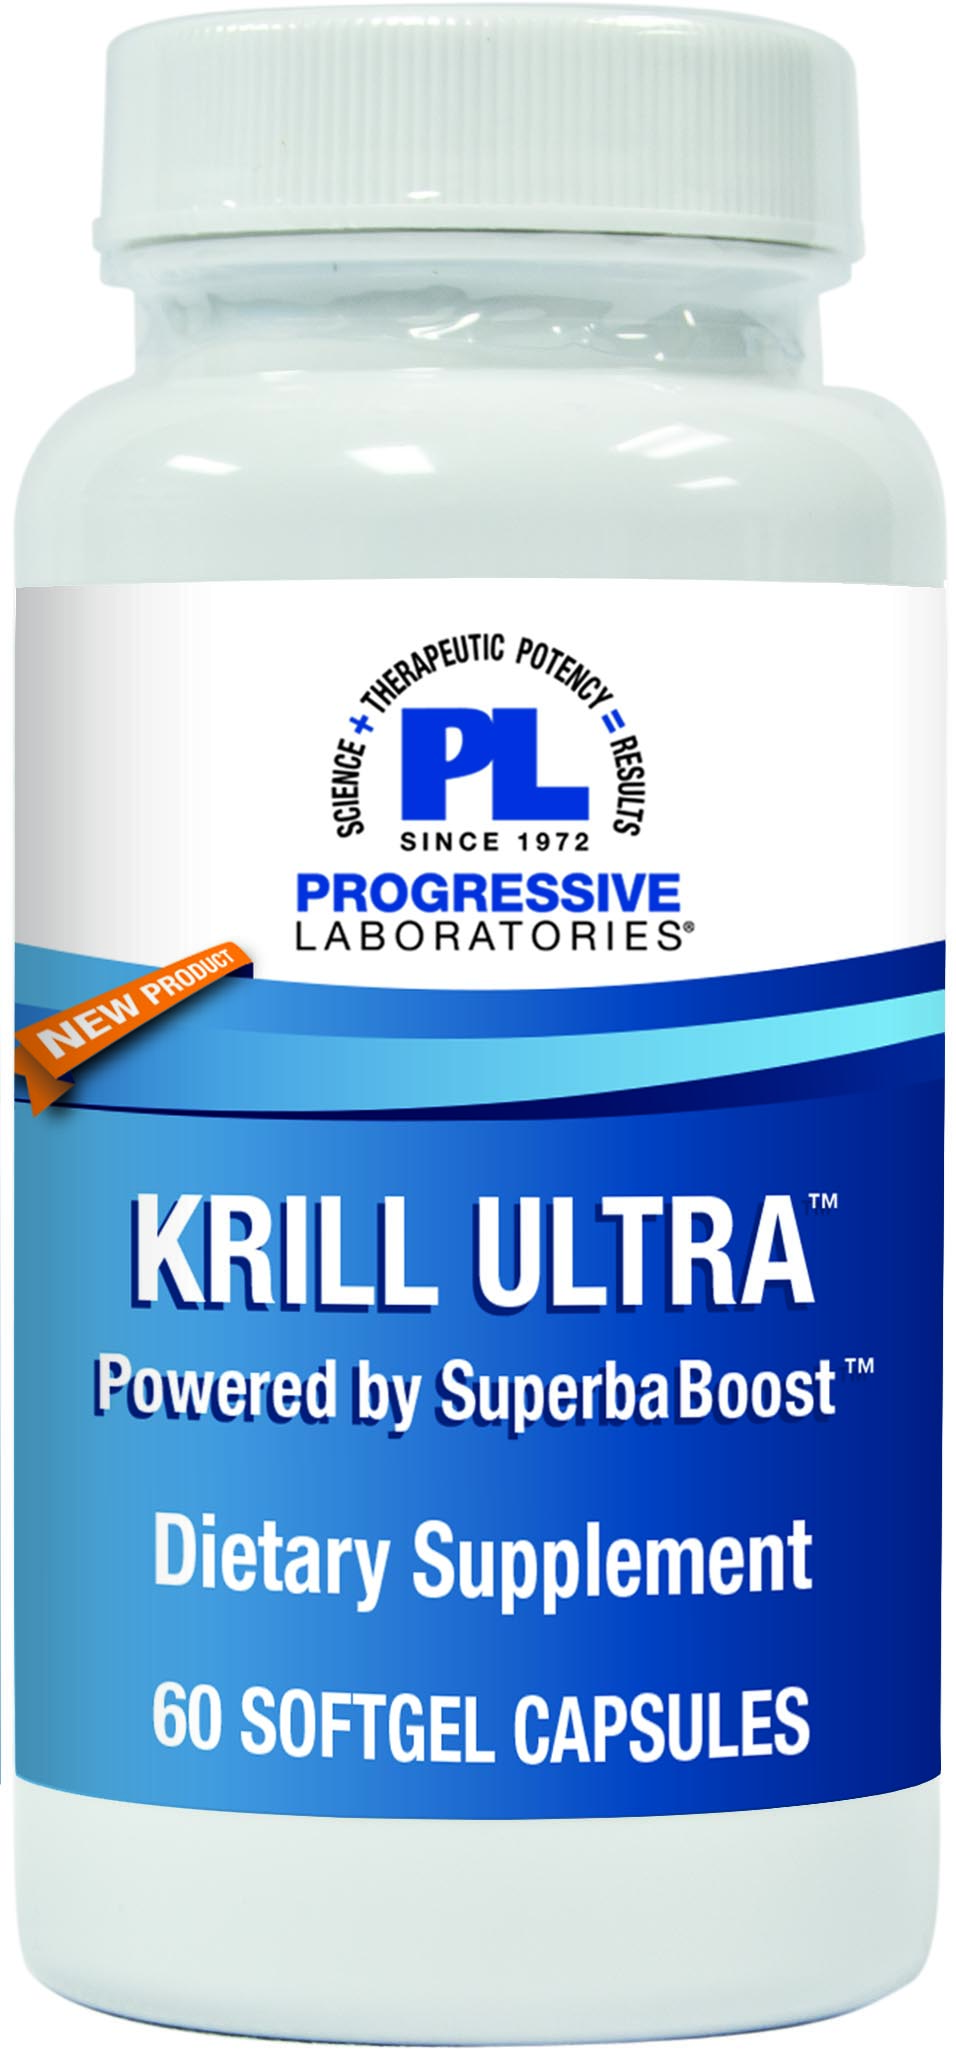 Krill Ultra™ - Powered by SuperbaBoost™